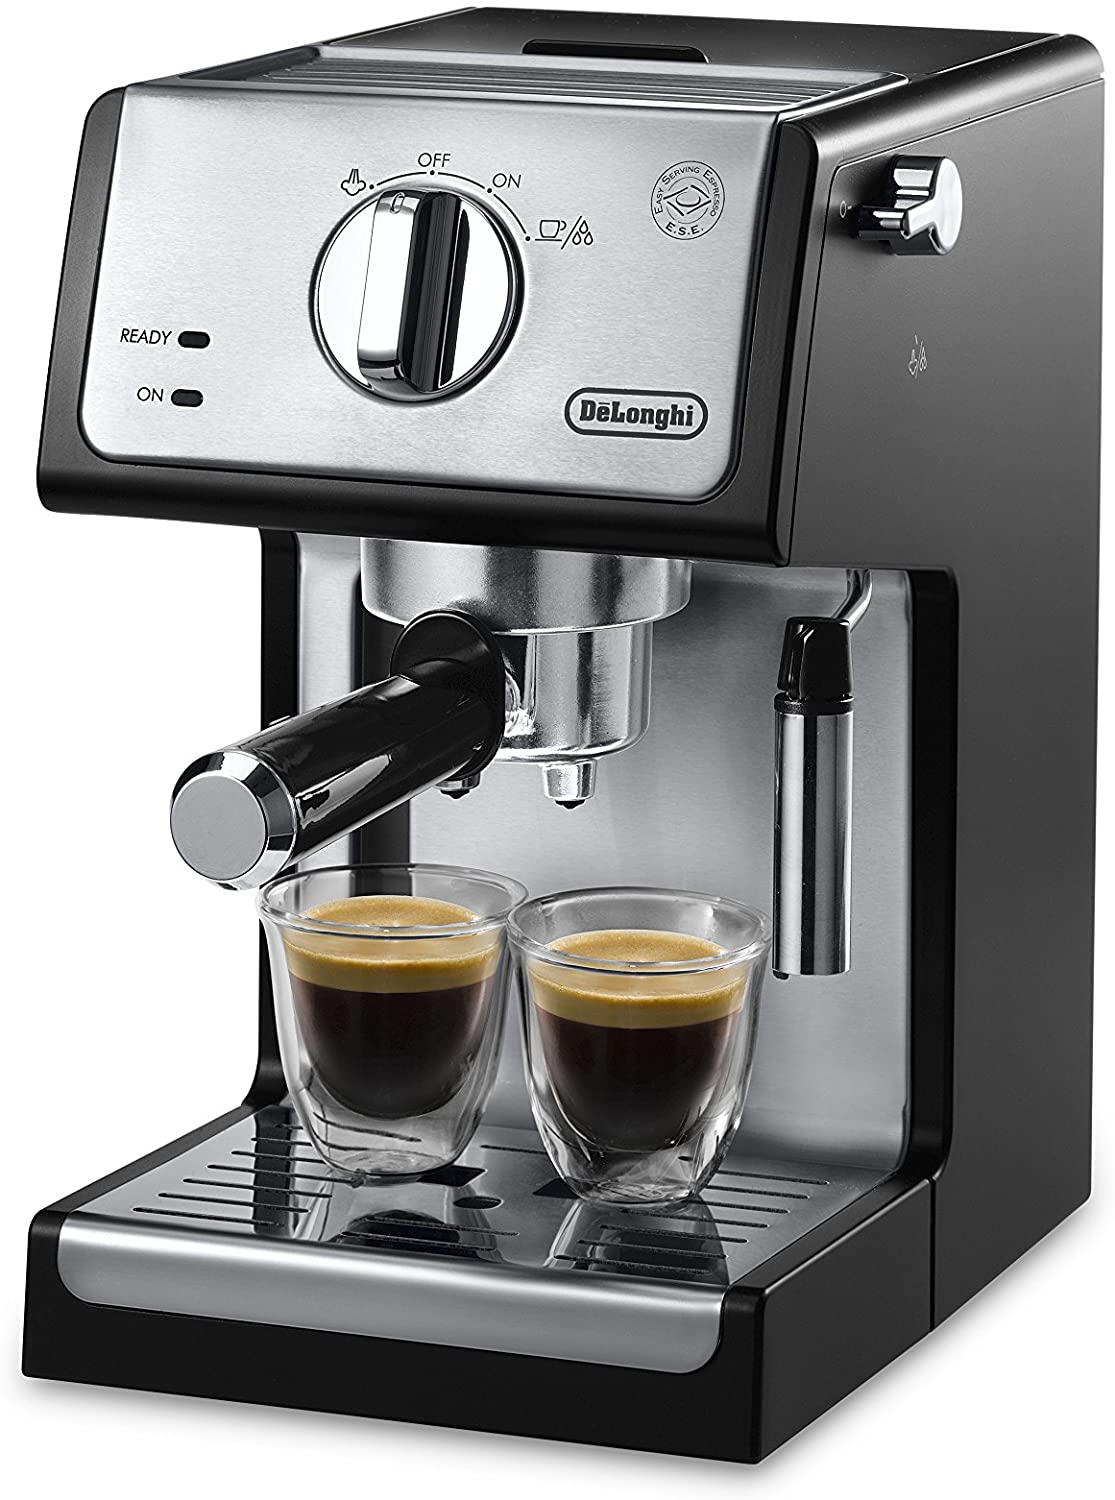 gifts-for-inlaws-espresso-maker